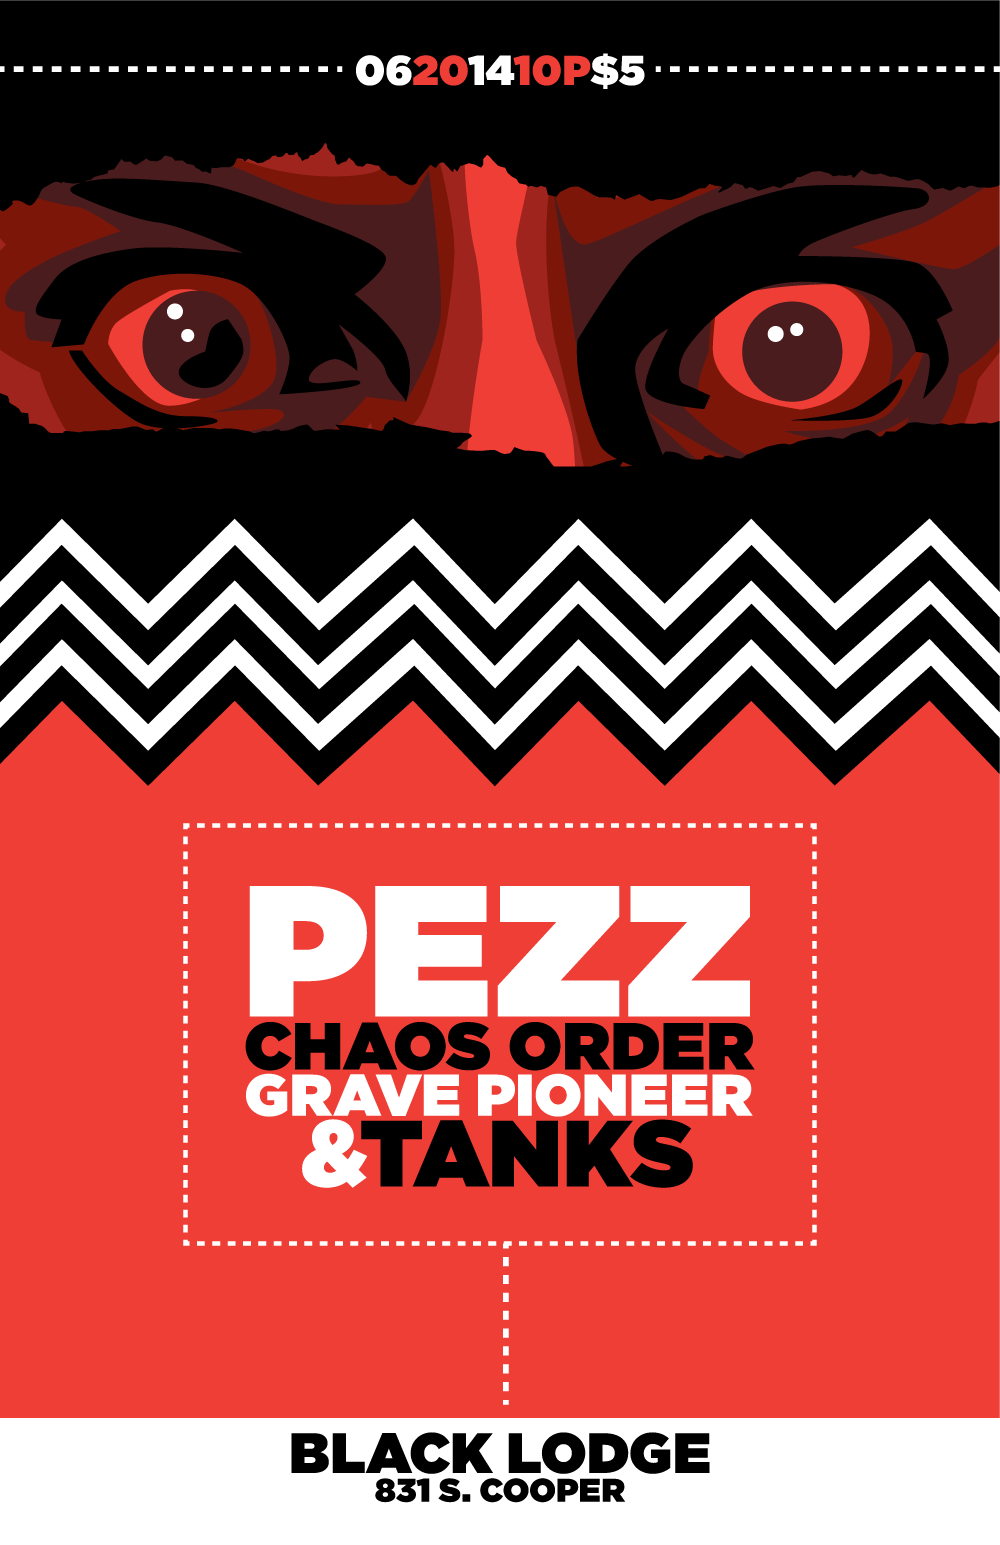 black_lodge_june202014_pezz_tanks-web.png